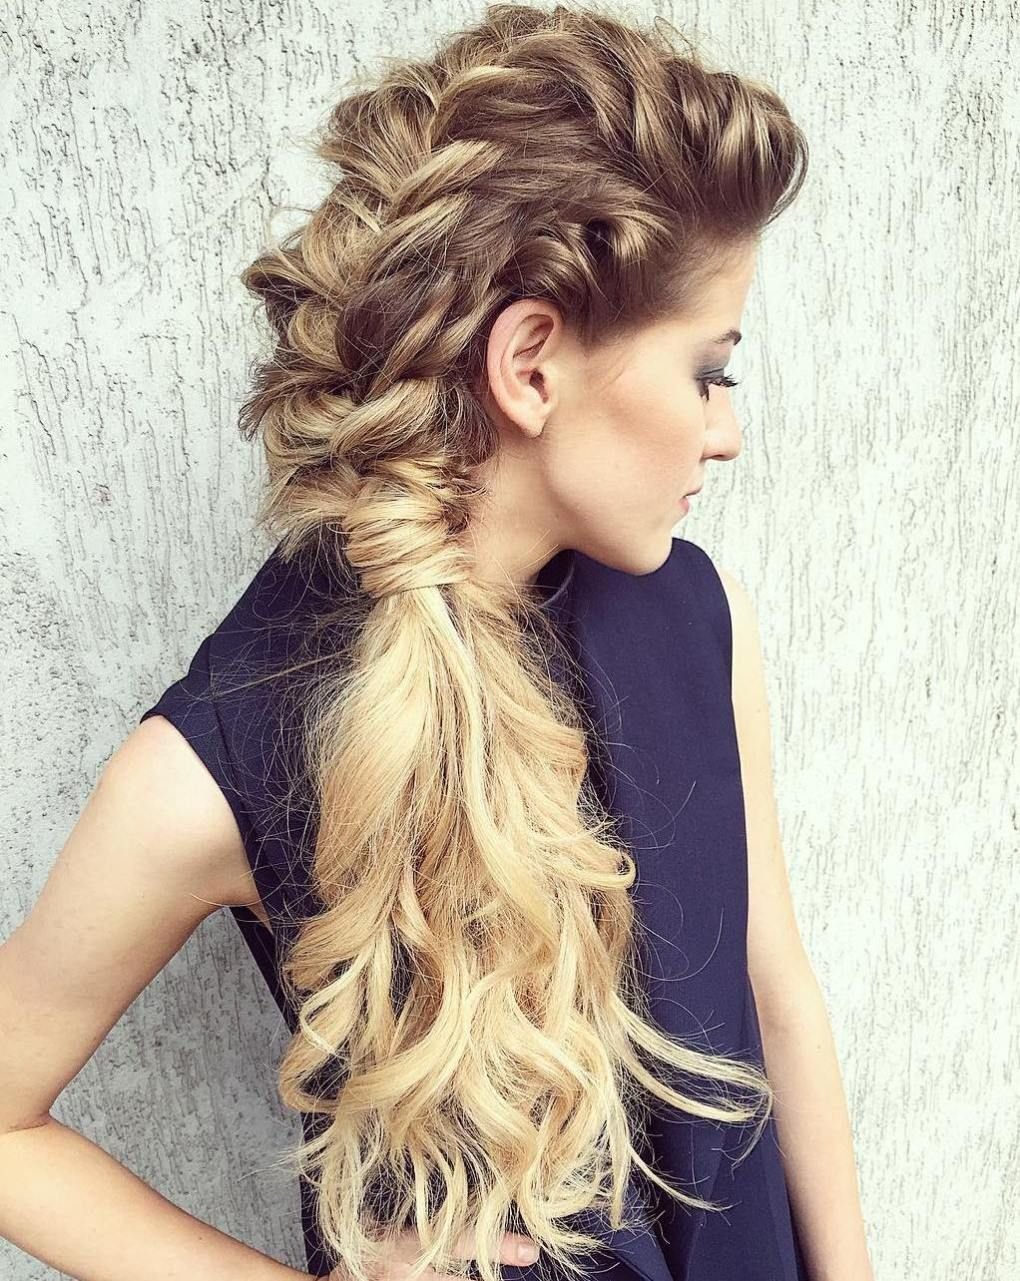 side hairstyles for prom to please any taste mohawks curly and